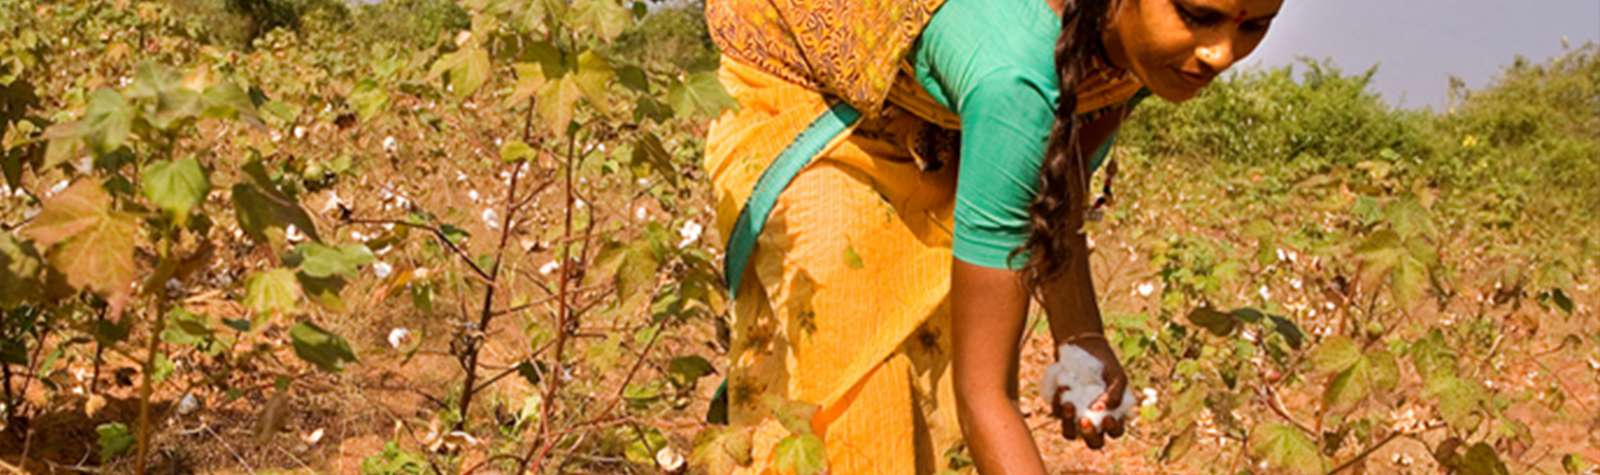 Re-thinking an organic cotton supply chain in India